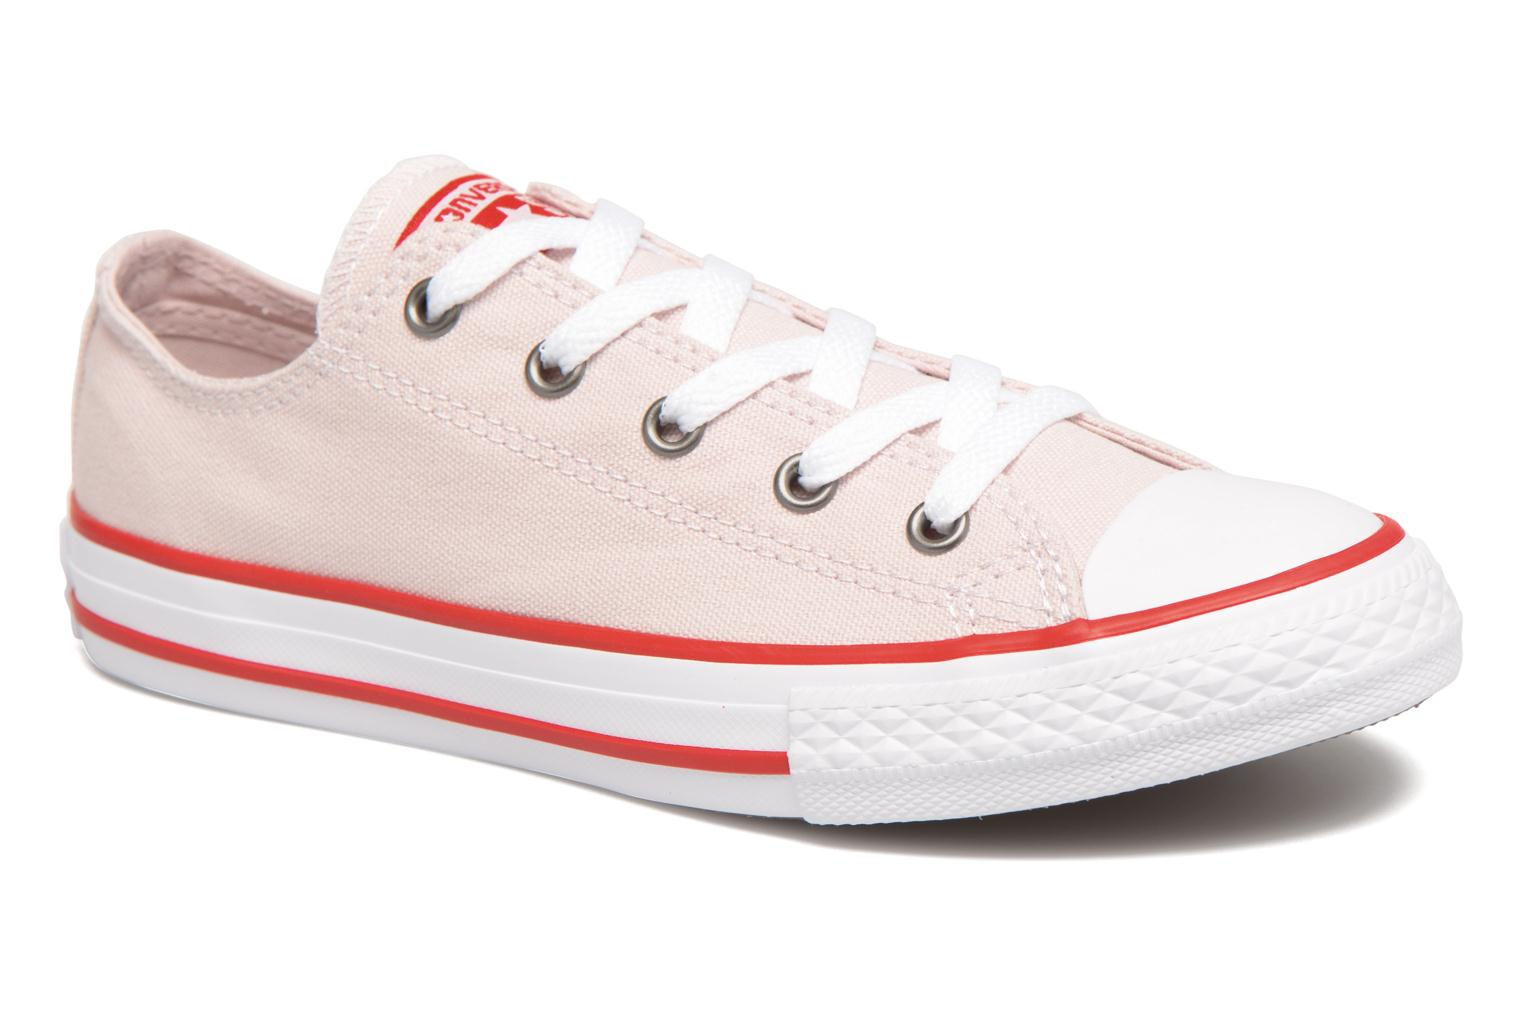 Sneakers Chuck Taylor All Star Ox Seasonal Color by ConverseConverseRozePaar schoenen - Sneakers88875528174131Textiel